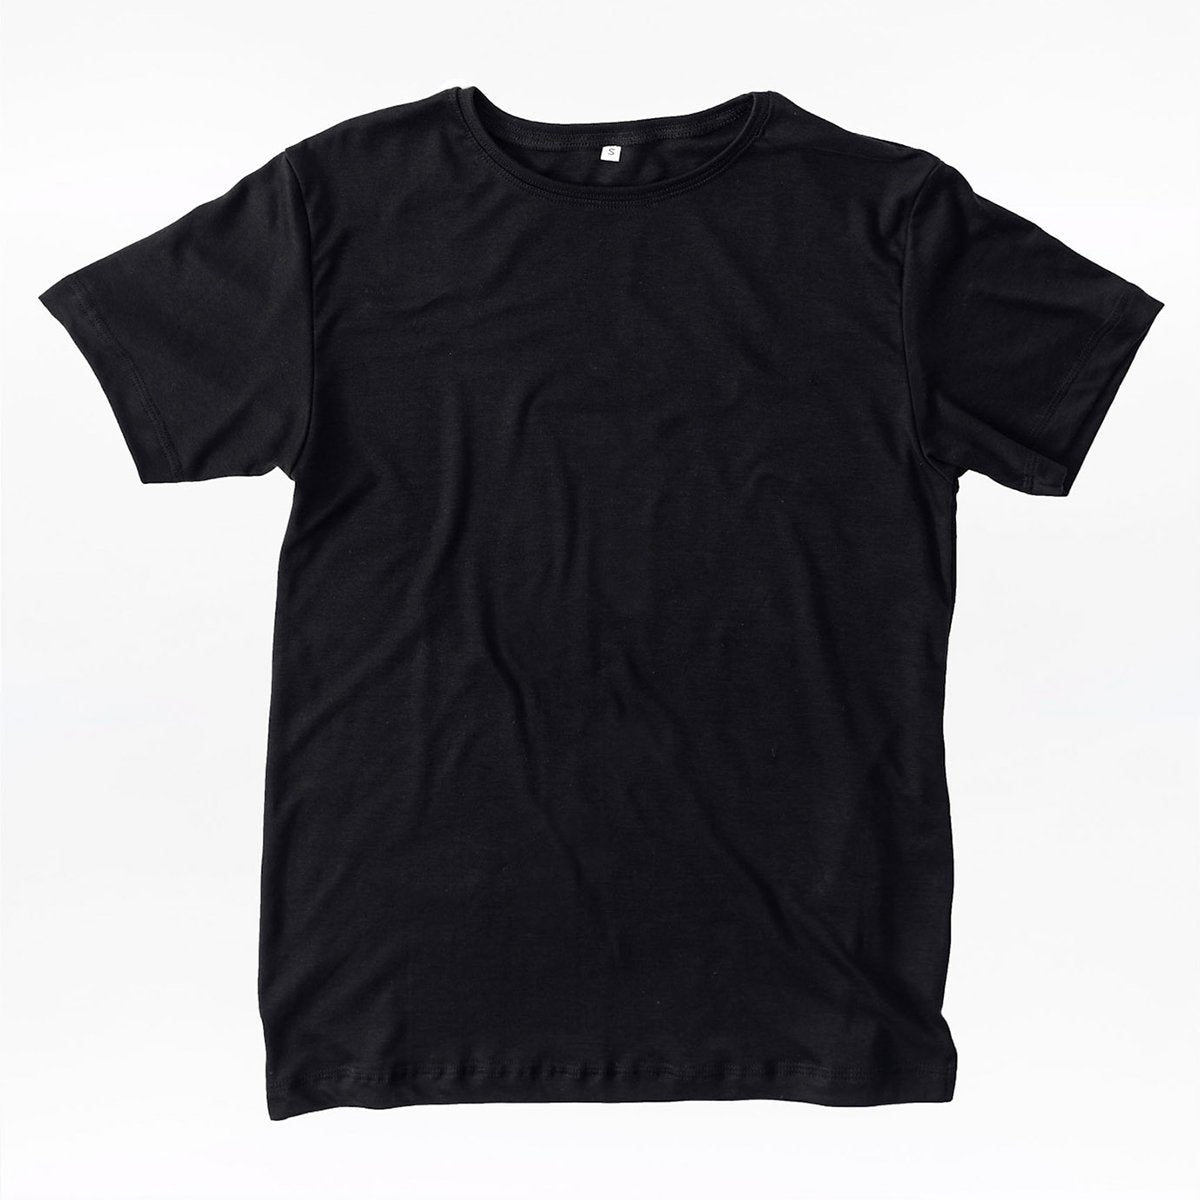 #1: The Most Comfortable Black T - Fitted